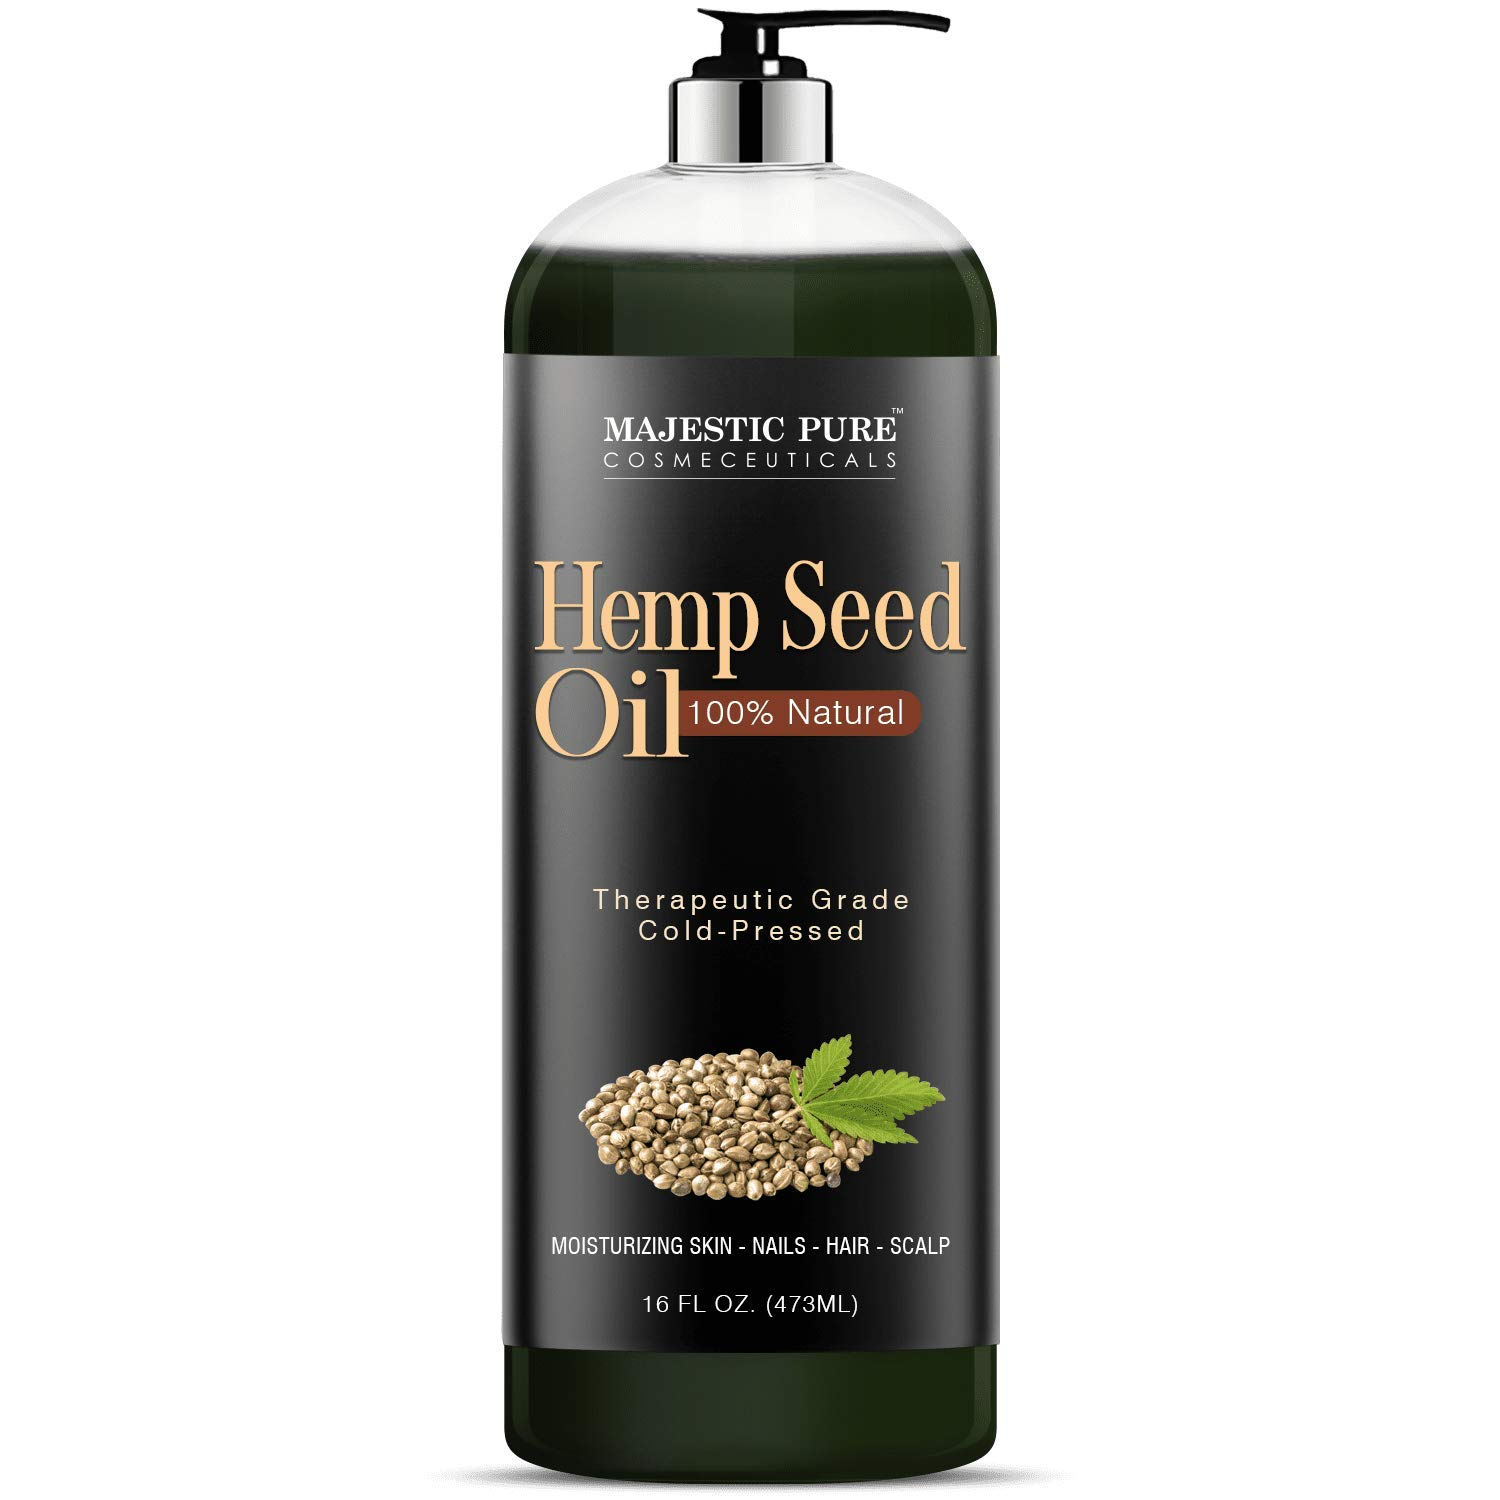 Majestic Pure Hemp Seed Oil, 100% Pure and Natural, Cold-Pressed, Moisturizing, for Skin Care, Massage, Hair Care, and to Dilute Essential Oils, 16 fl oz